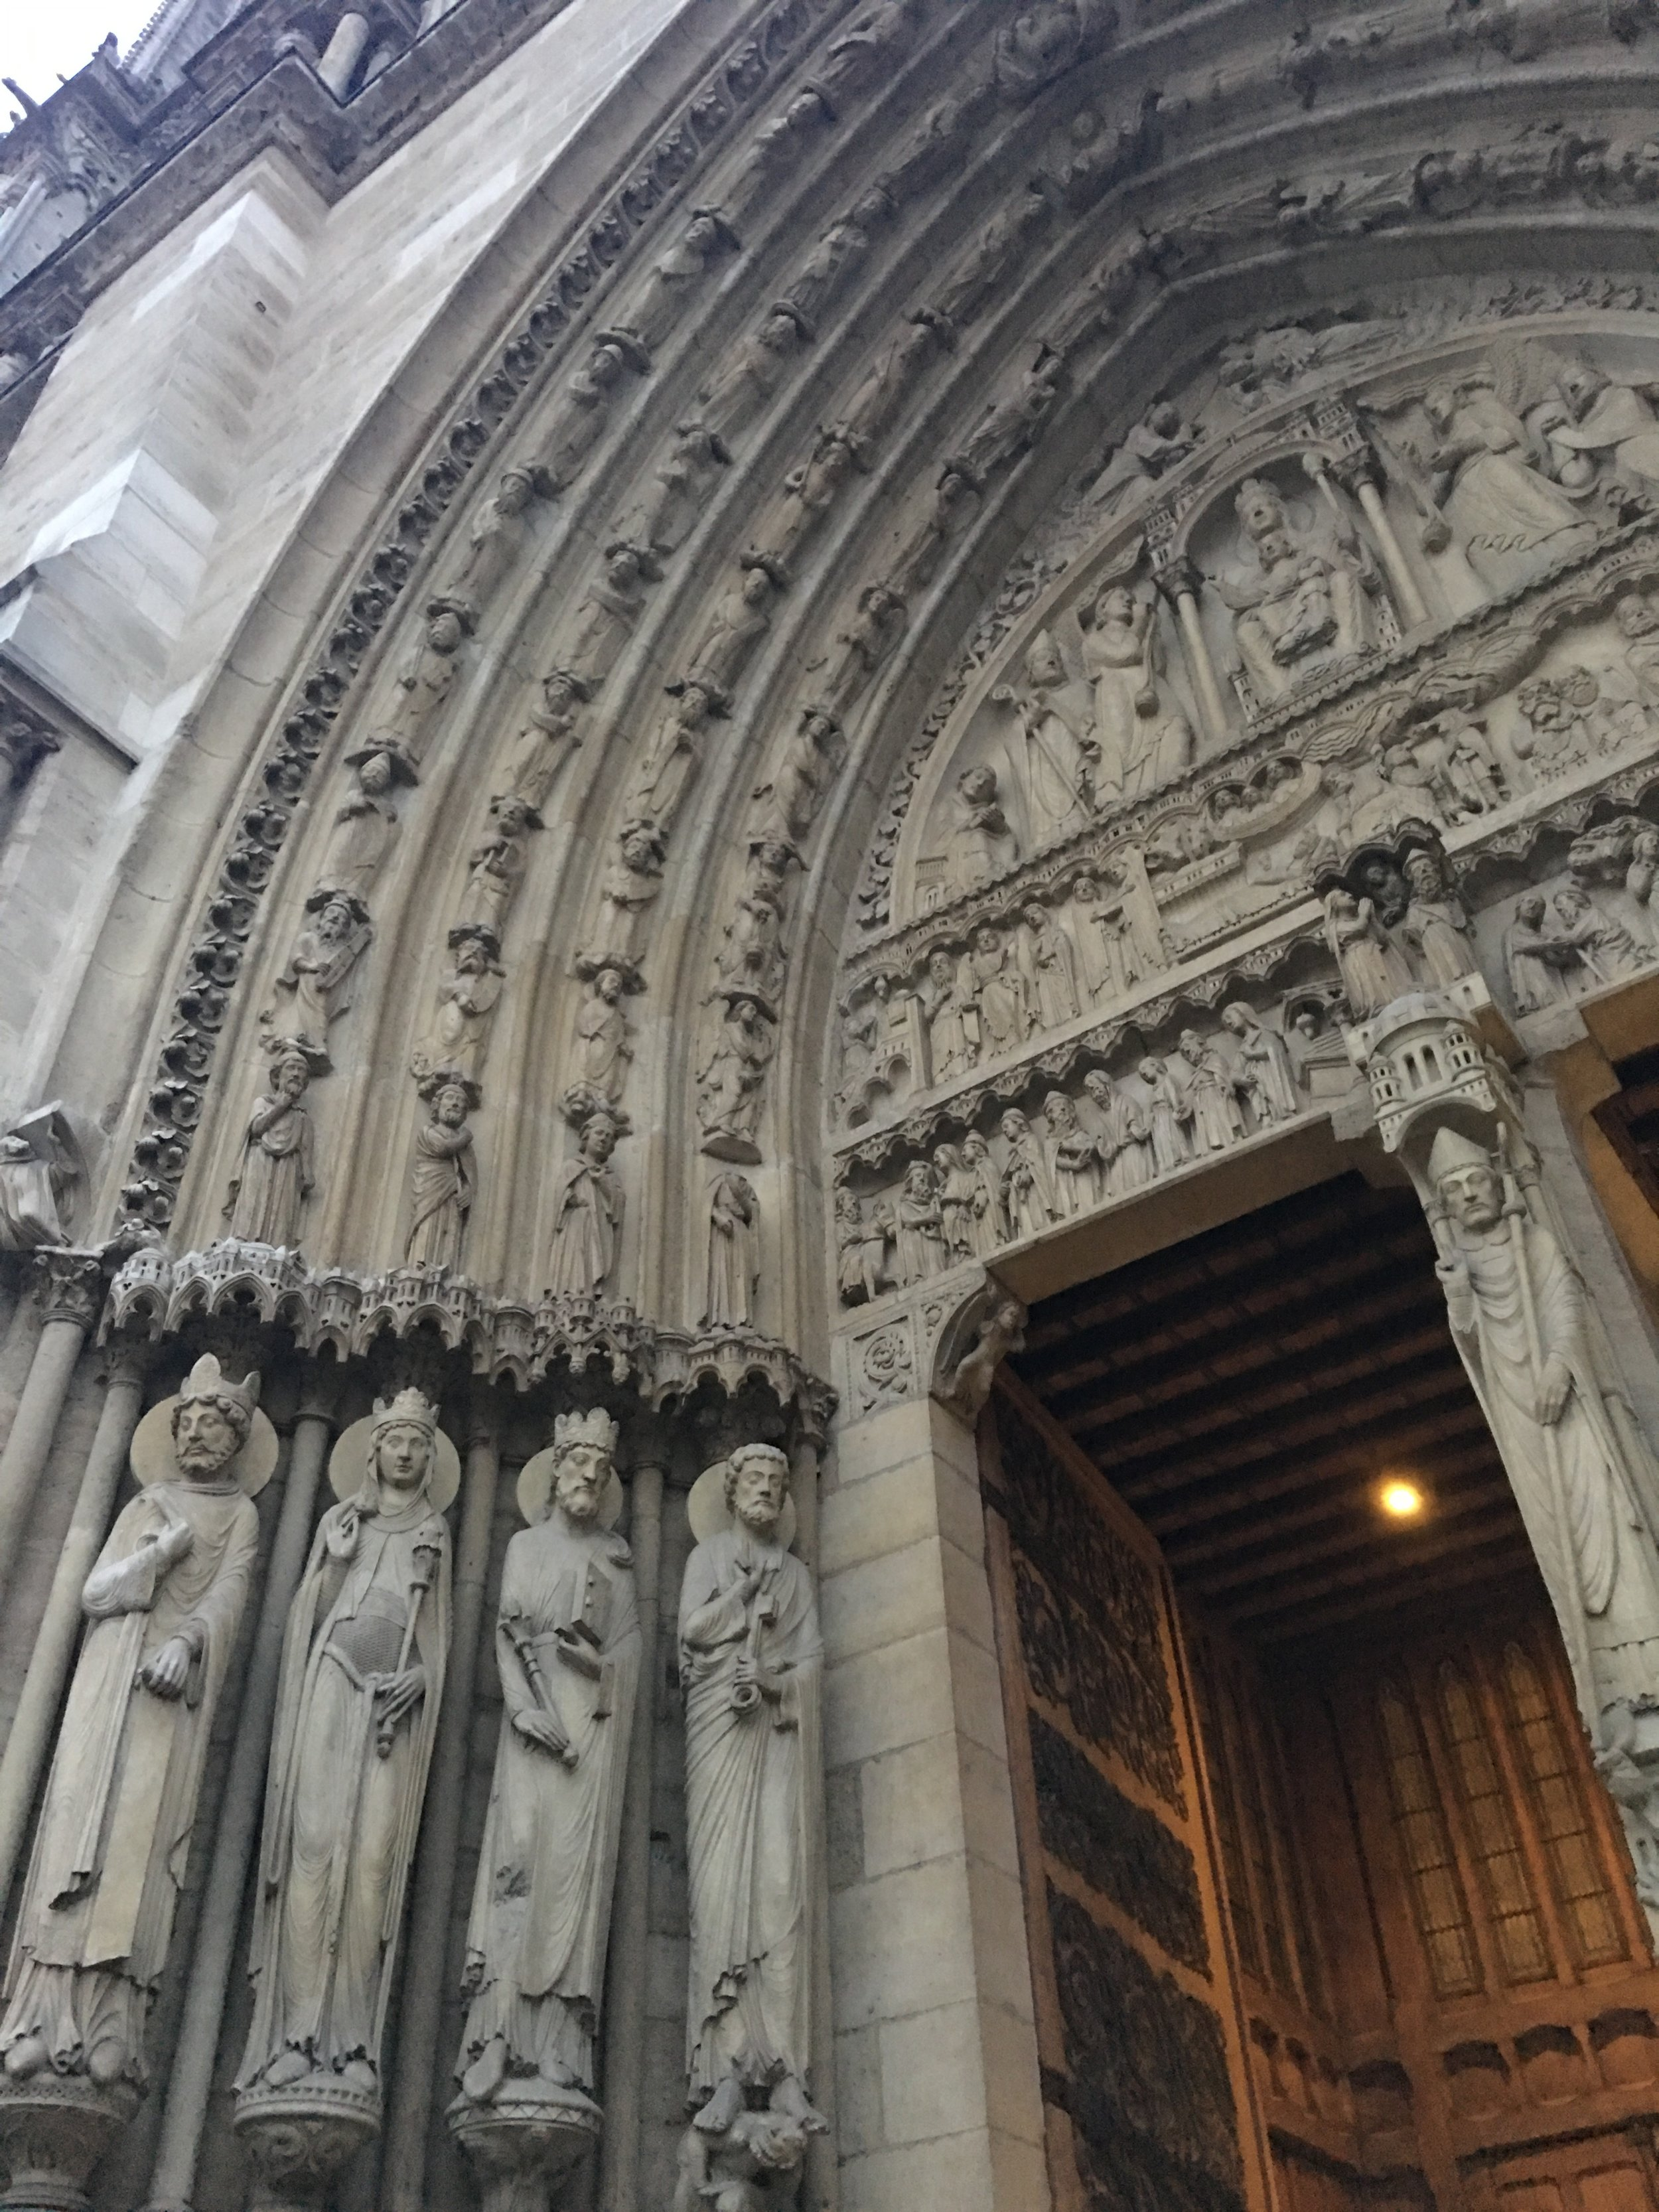 At the entrance of Notre Dame. All of this was hand sculpted, the detail is incredible!